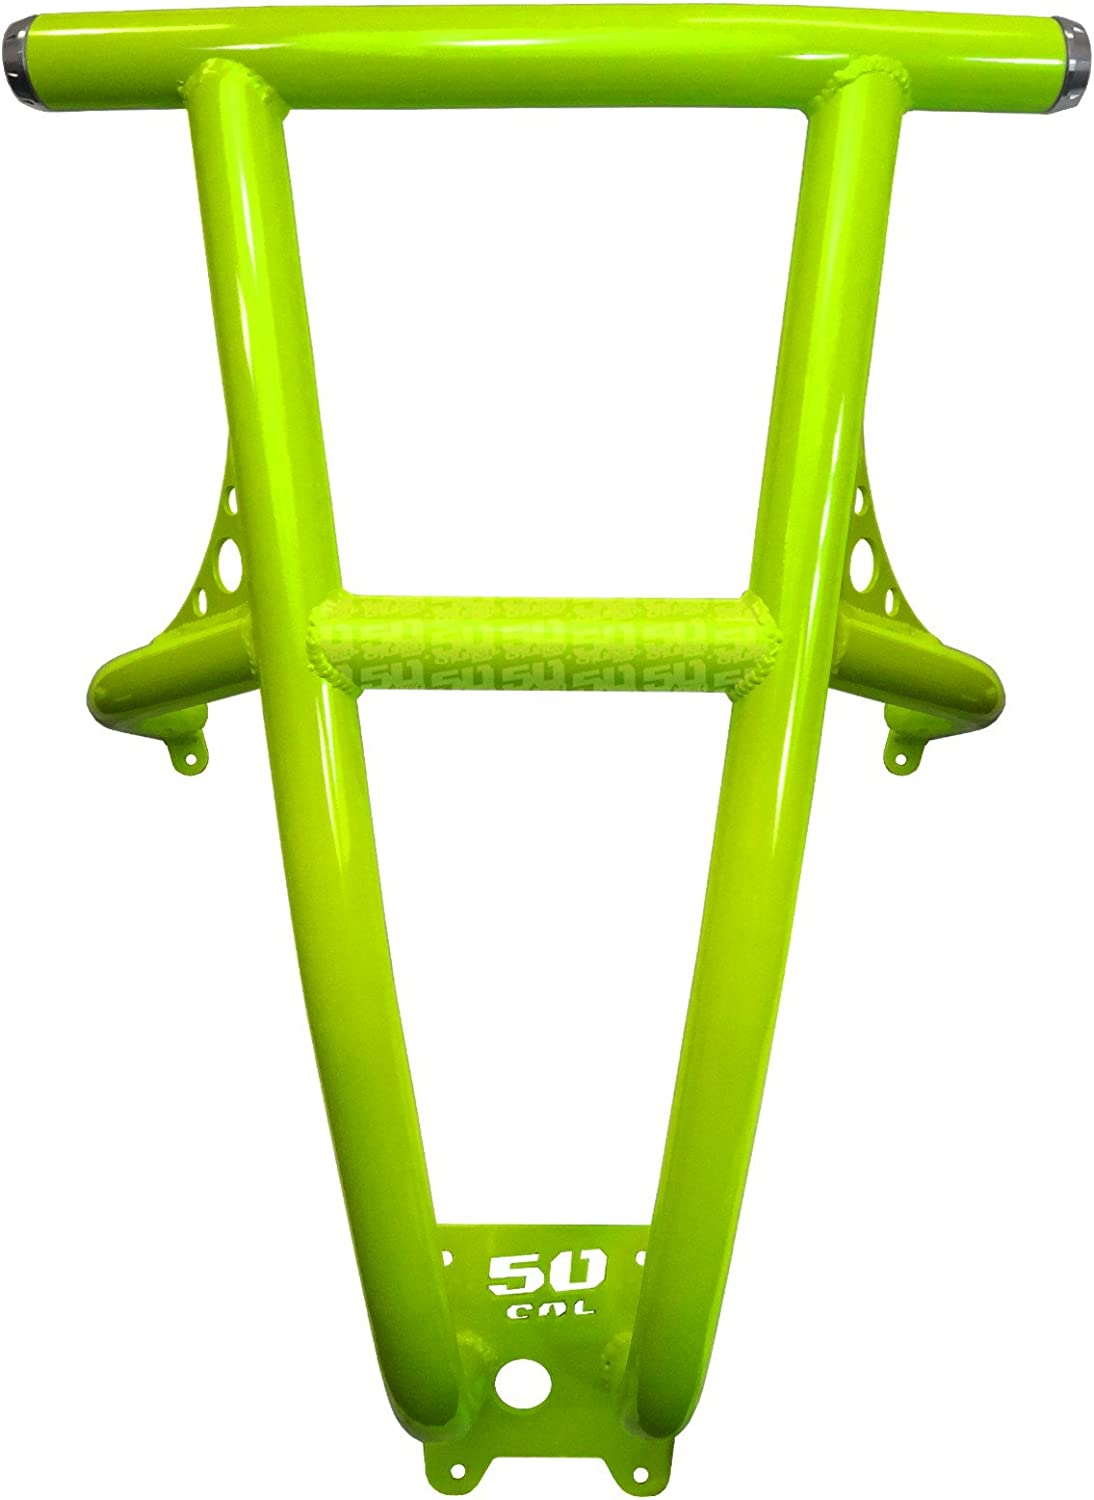 Powdercoated Lime Squeeze RZR XP1000 Rear Bumper 5376A Fits RZR XP1000 2014-2018 /& XP1000 Turbo 2015-2018